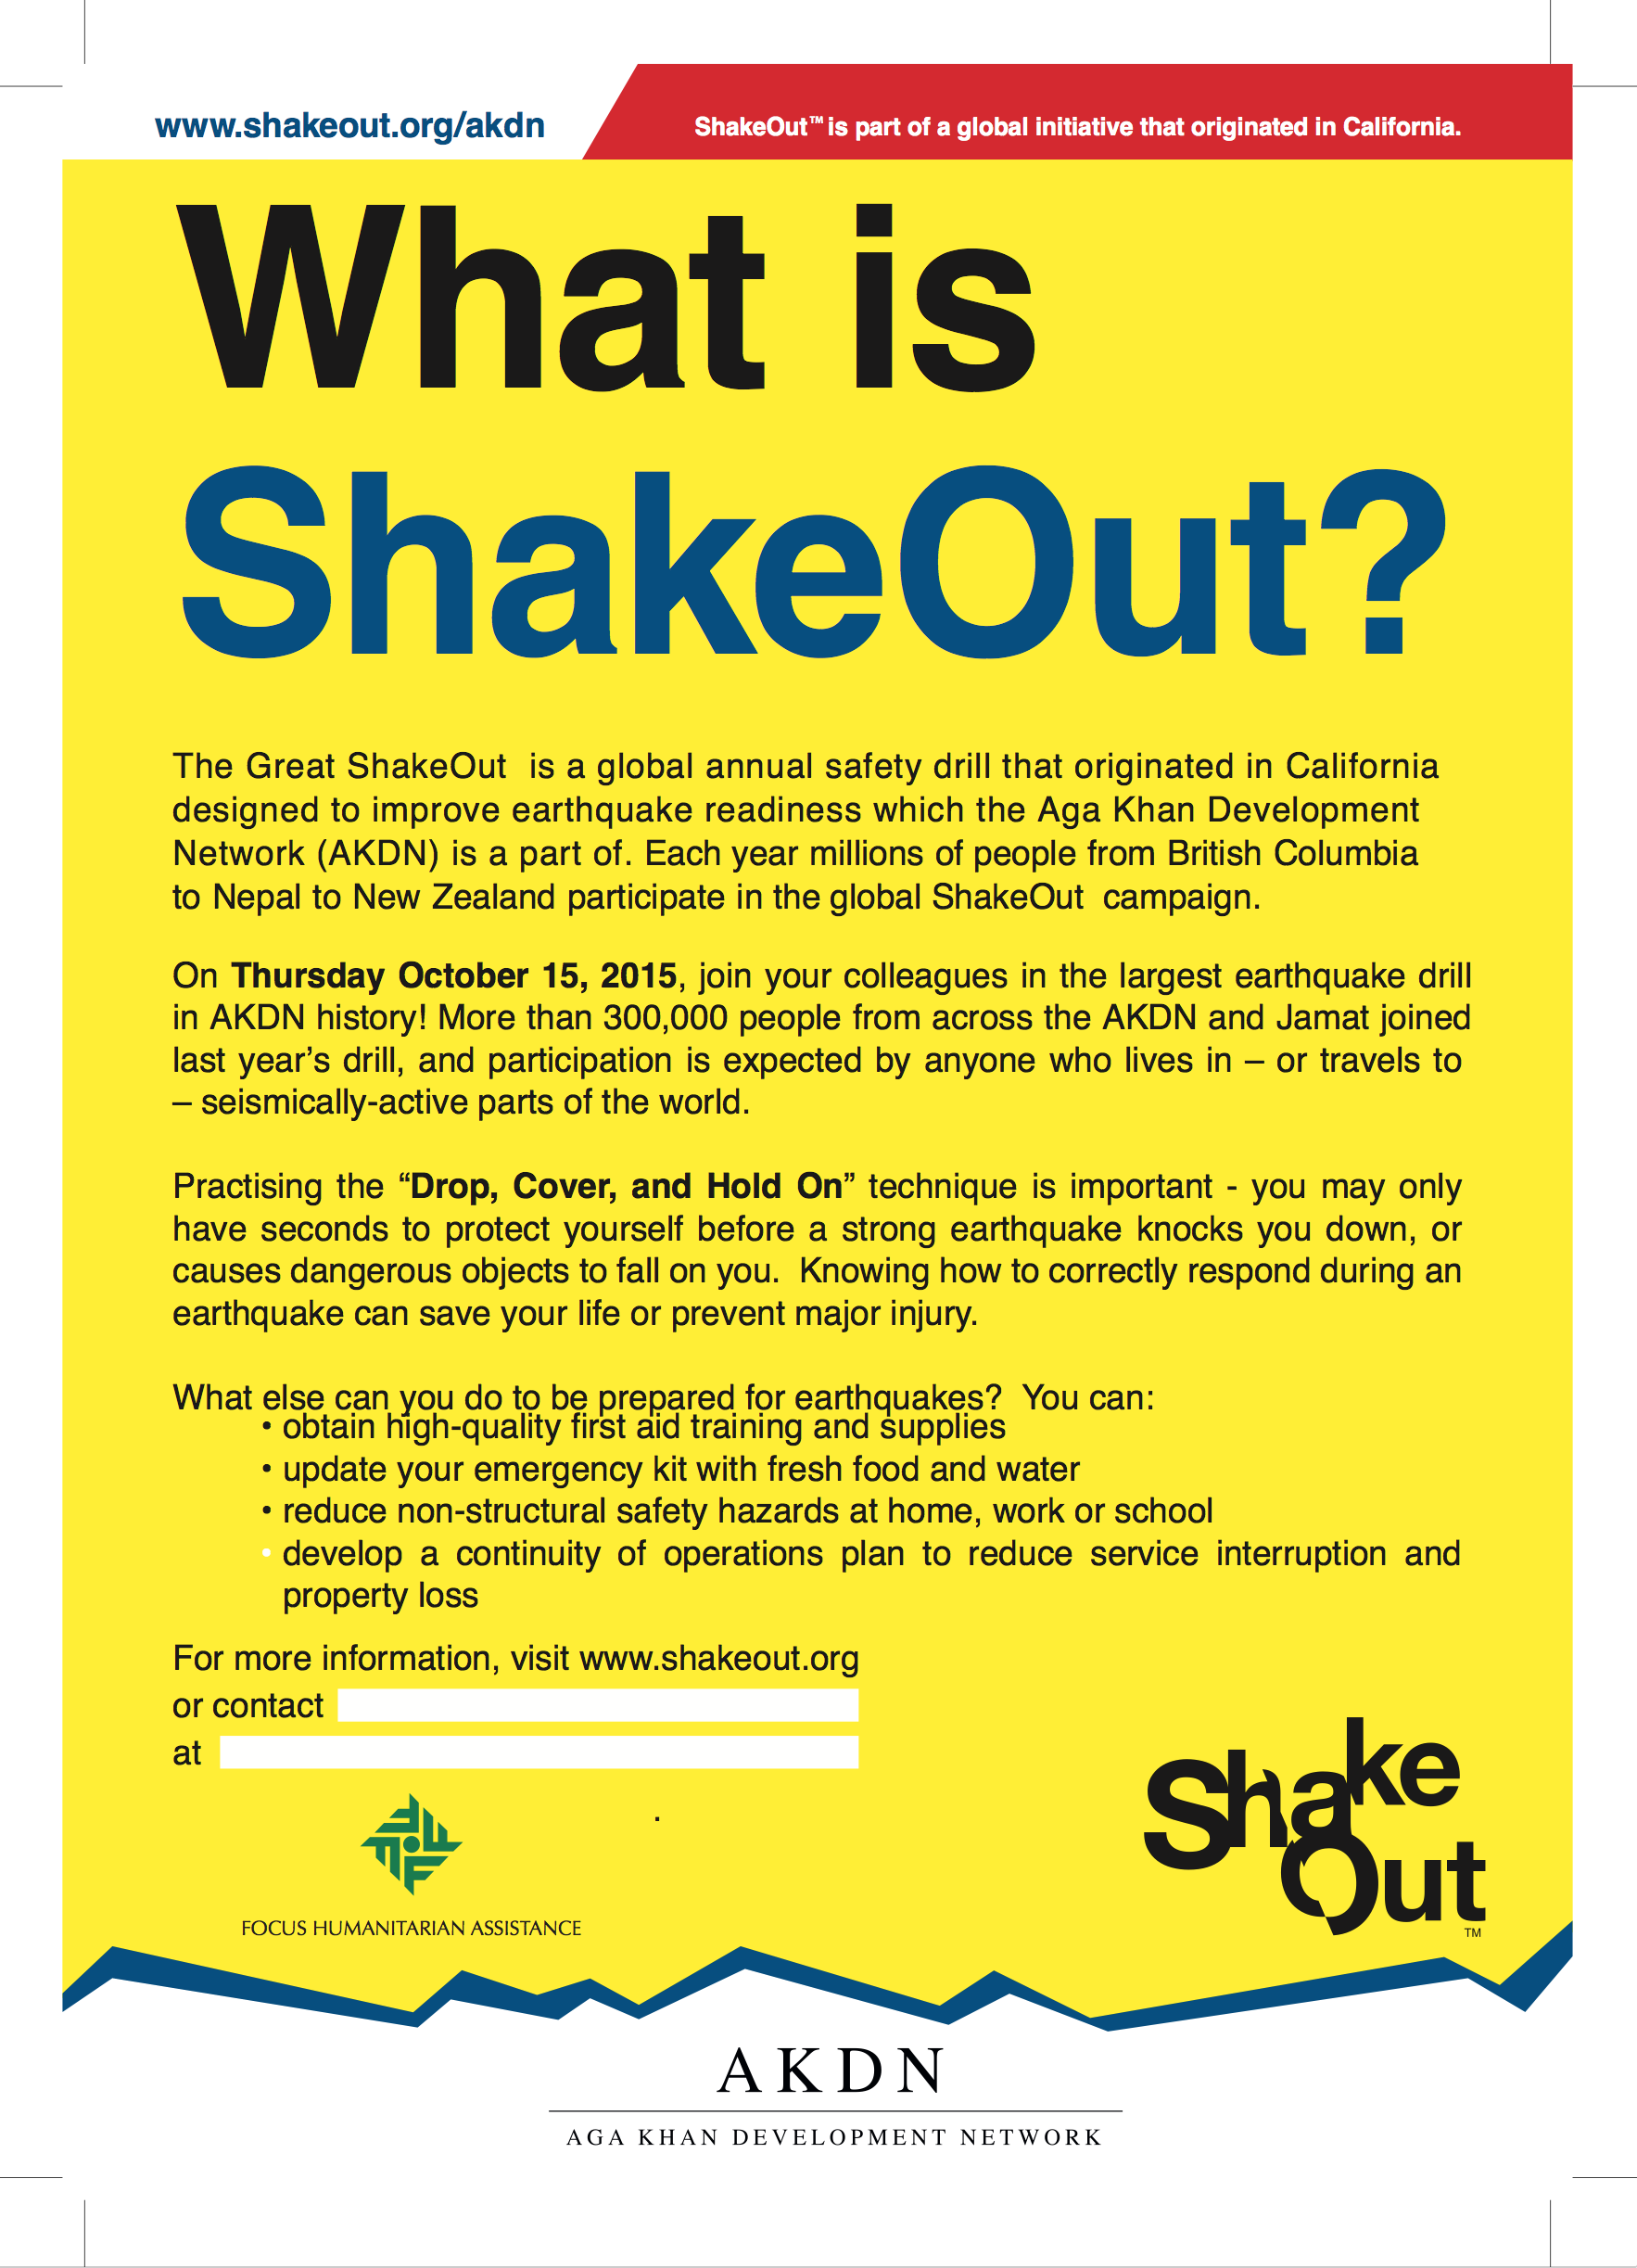 Great ShakeOut Earthquake Drills - AKDN